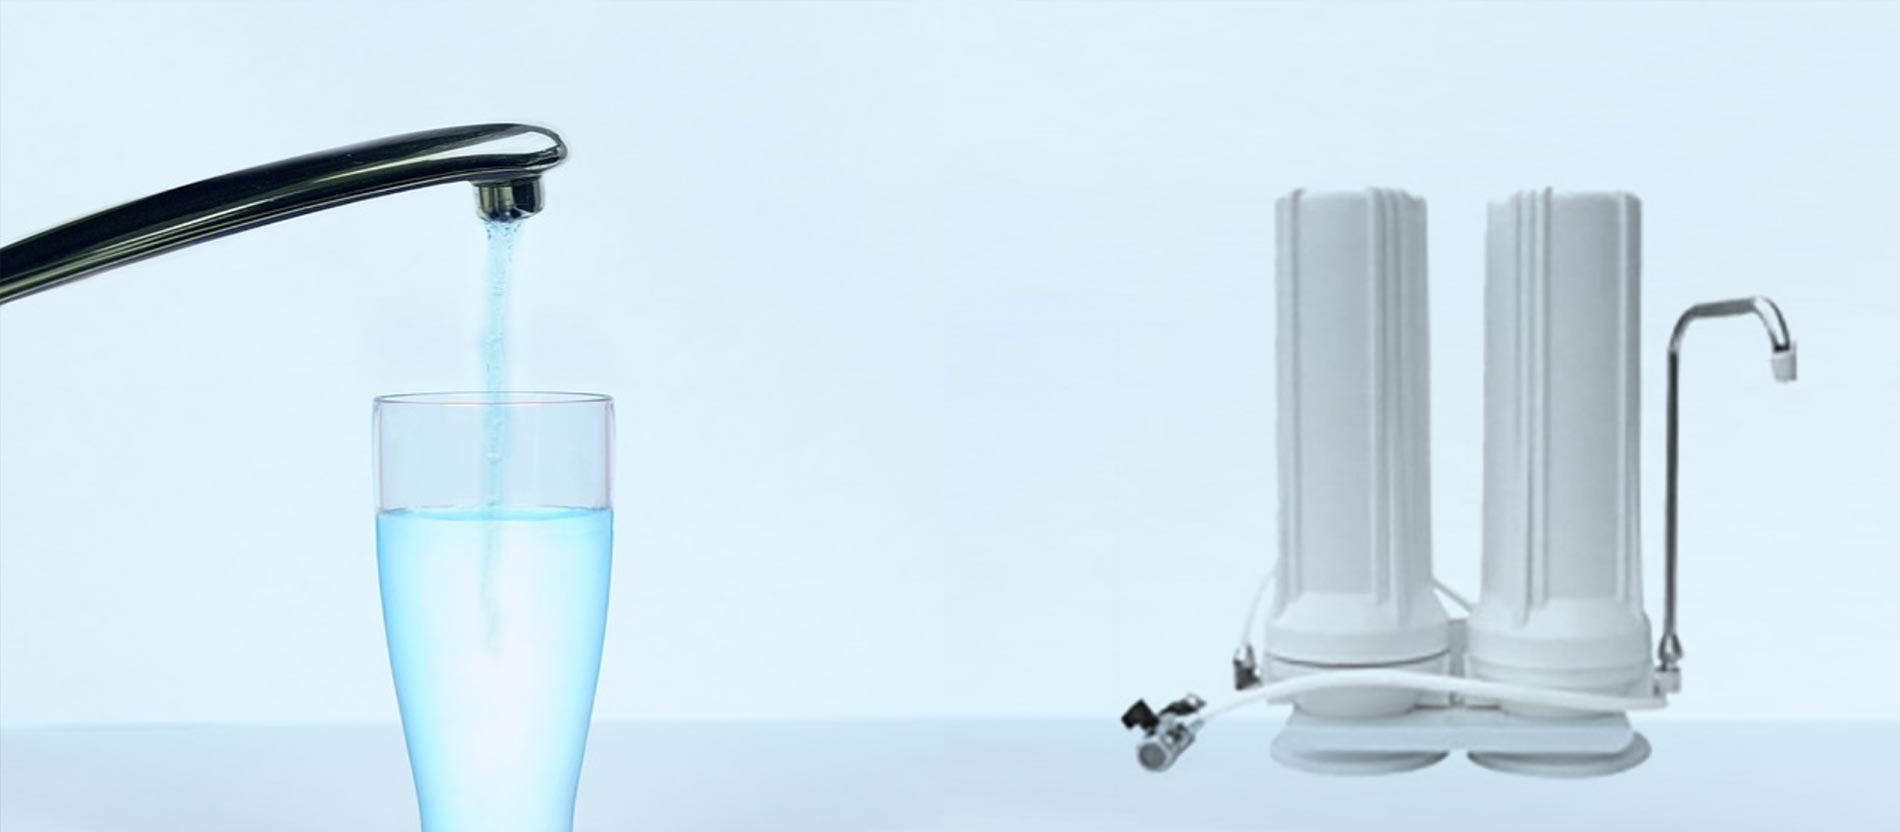 veluda-water-filter-header-3-Rakitzisclima-φίλτρο-νερού